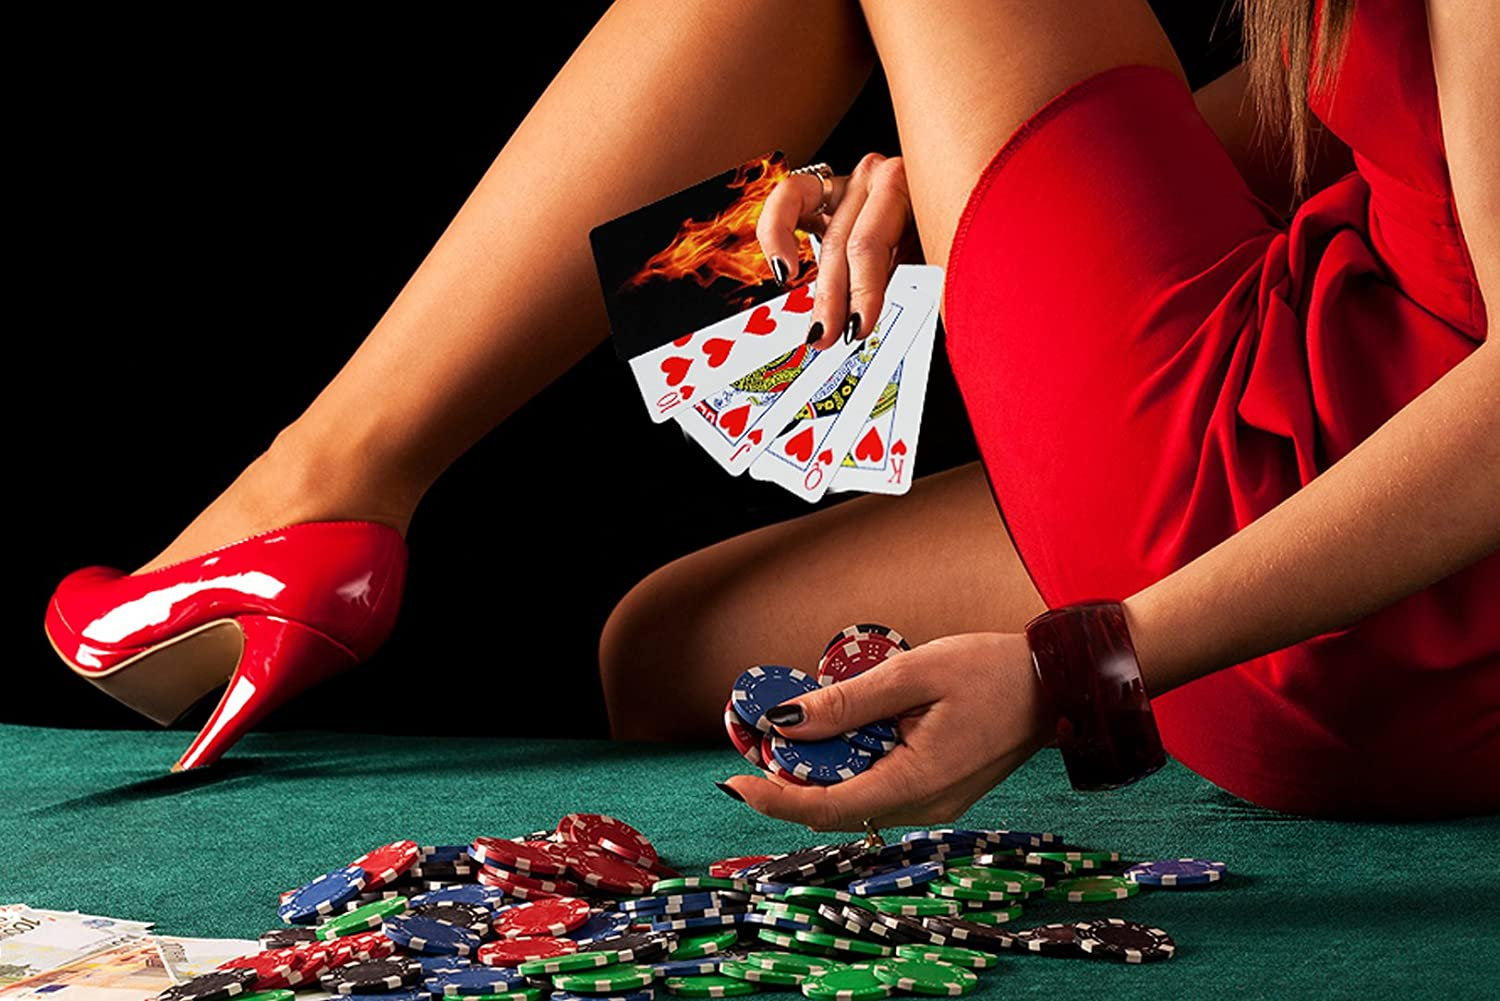 How to start a legal gambling business in 7 simple steps